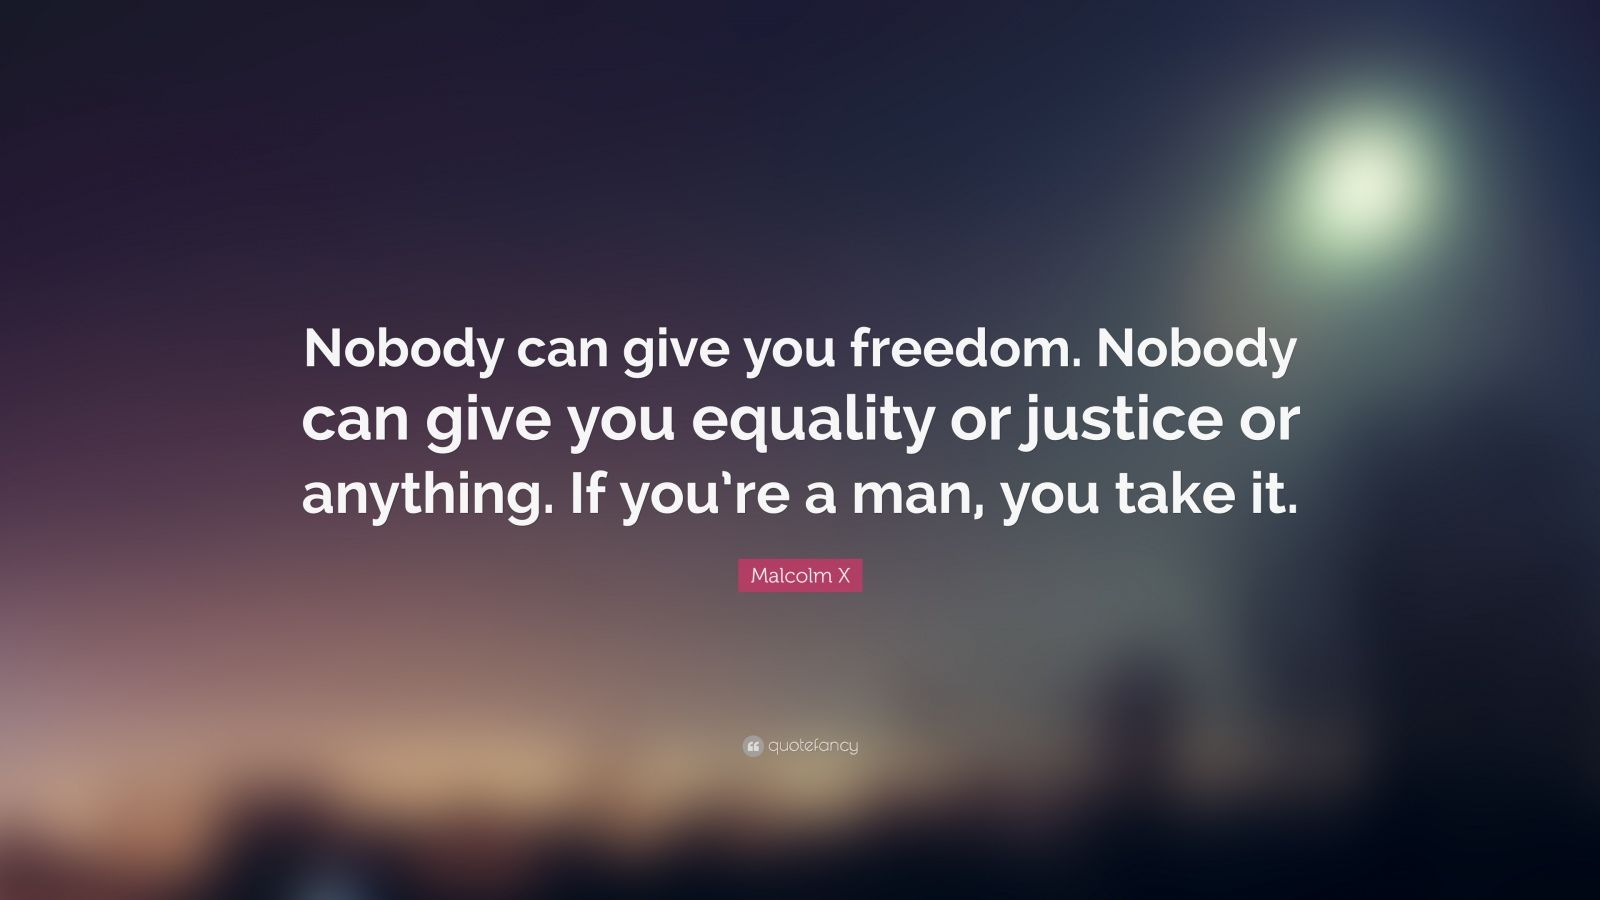 """Patriotic Quotes: """"Nobody can give you freedom. Nobody can give you equality or justice or anything. If you're a man, you take it."""" — Malcolm X"""